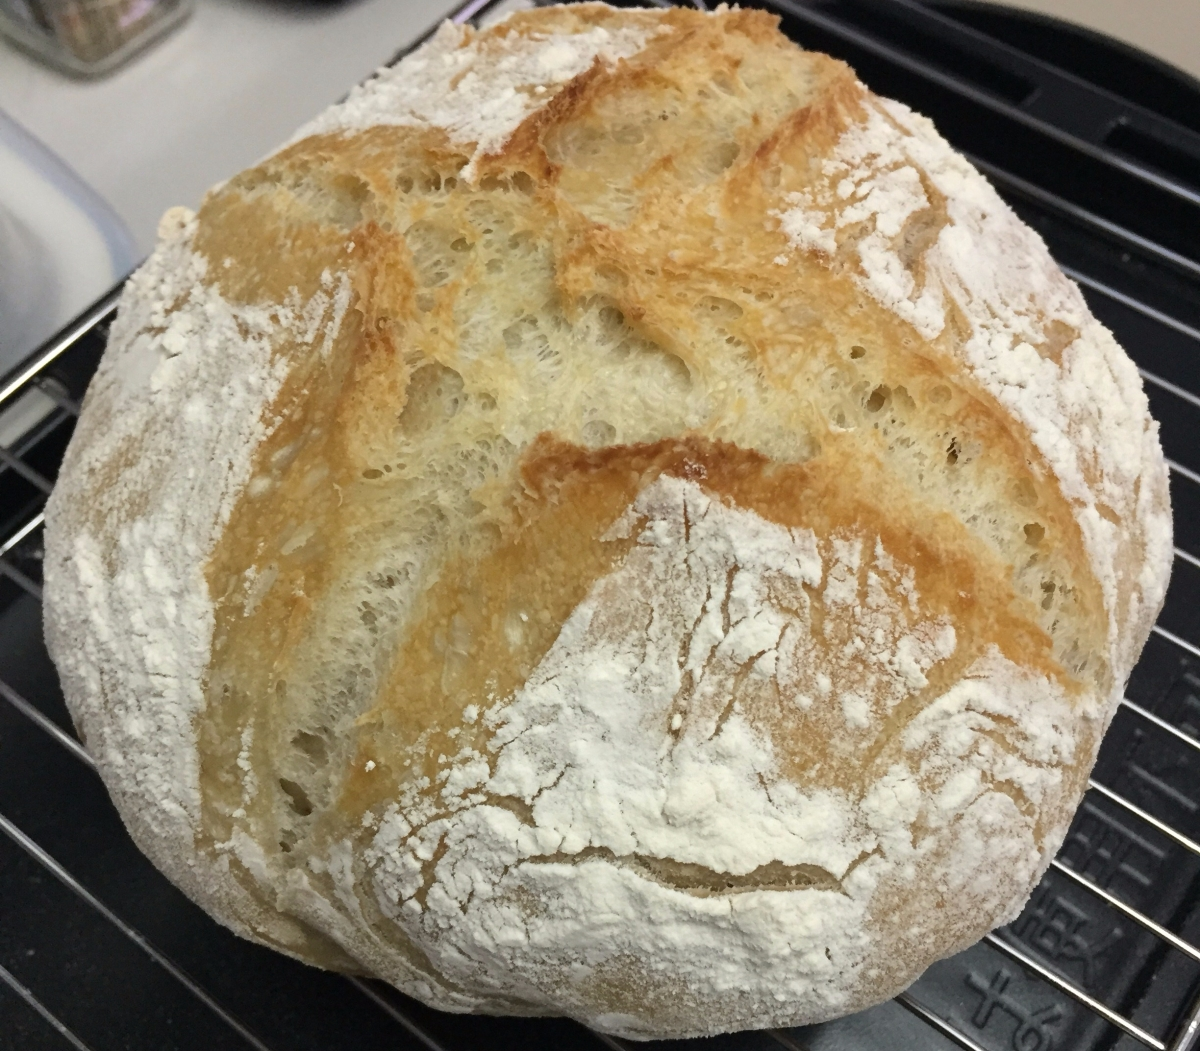 原味免揉麵包 Plain No-knead bread